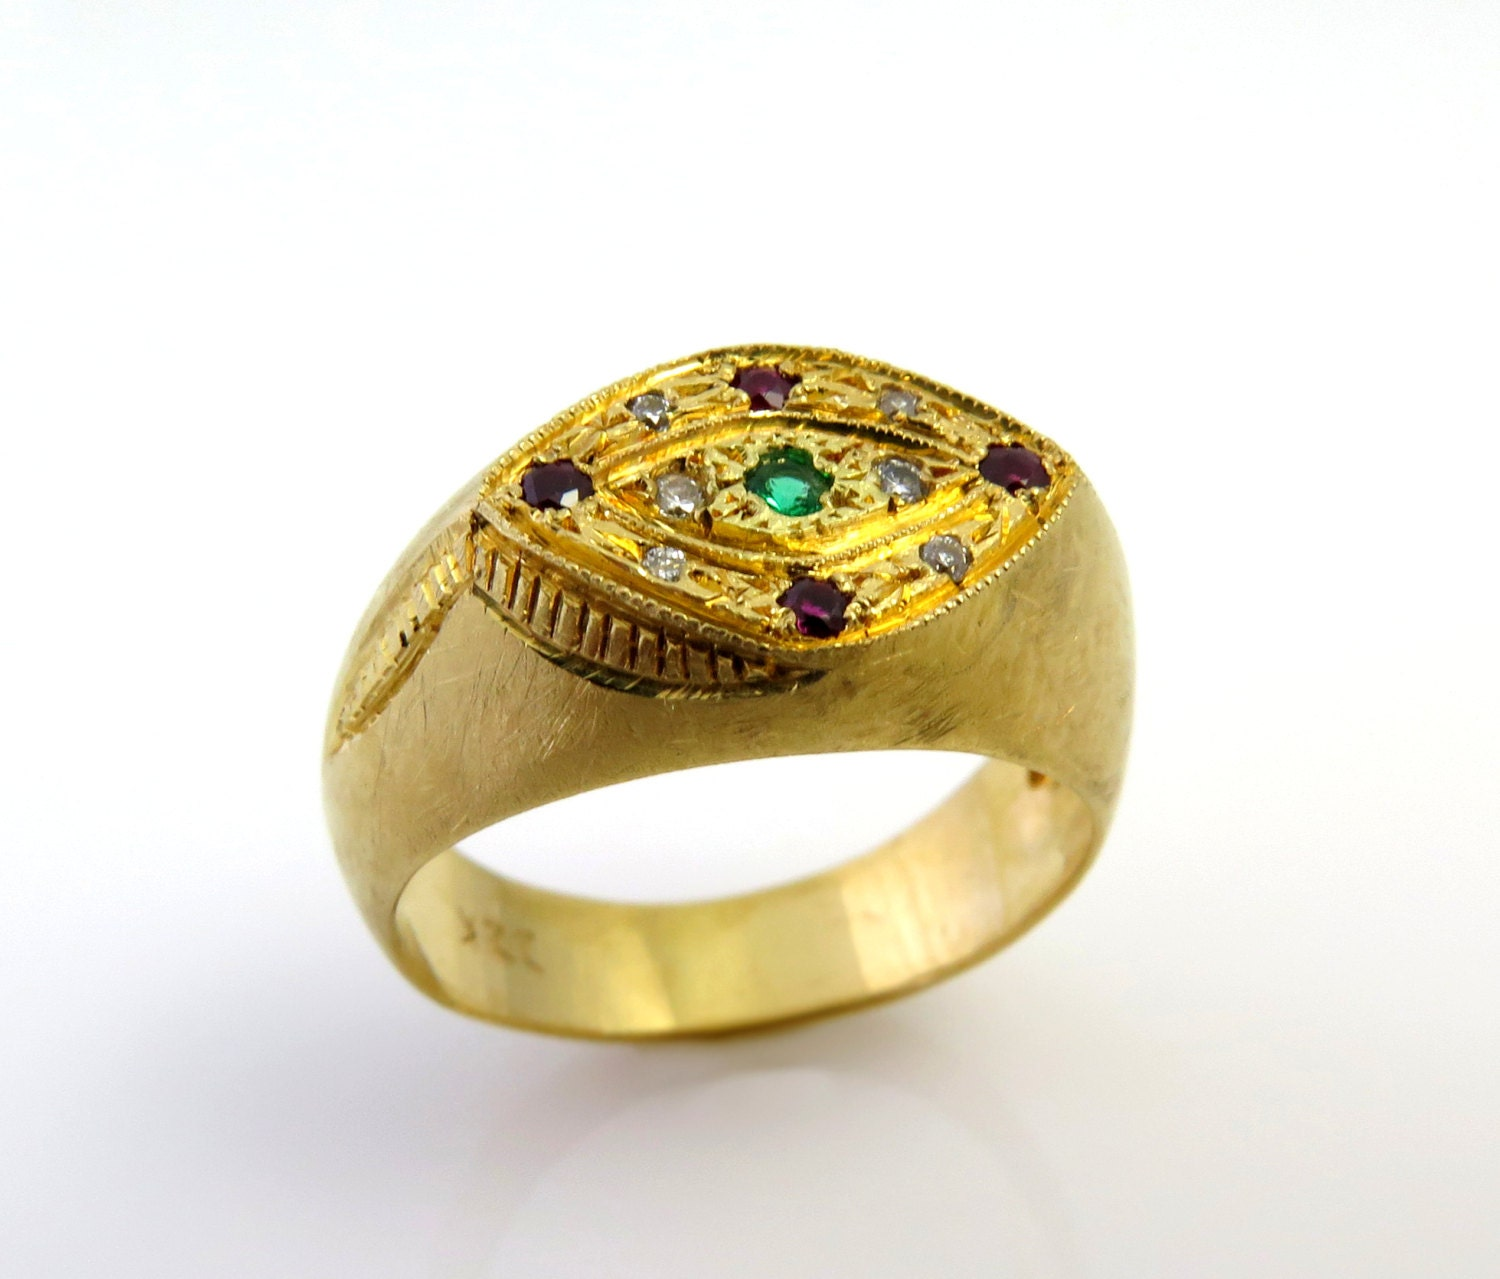 gold rings ring in online senco buy yellow prices dp low at